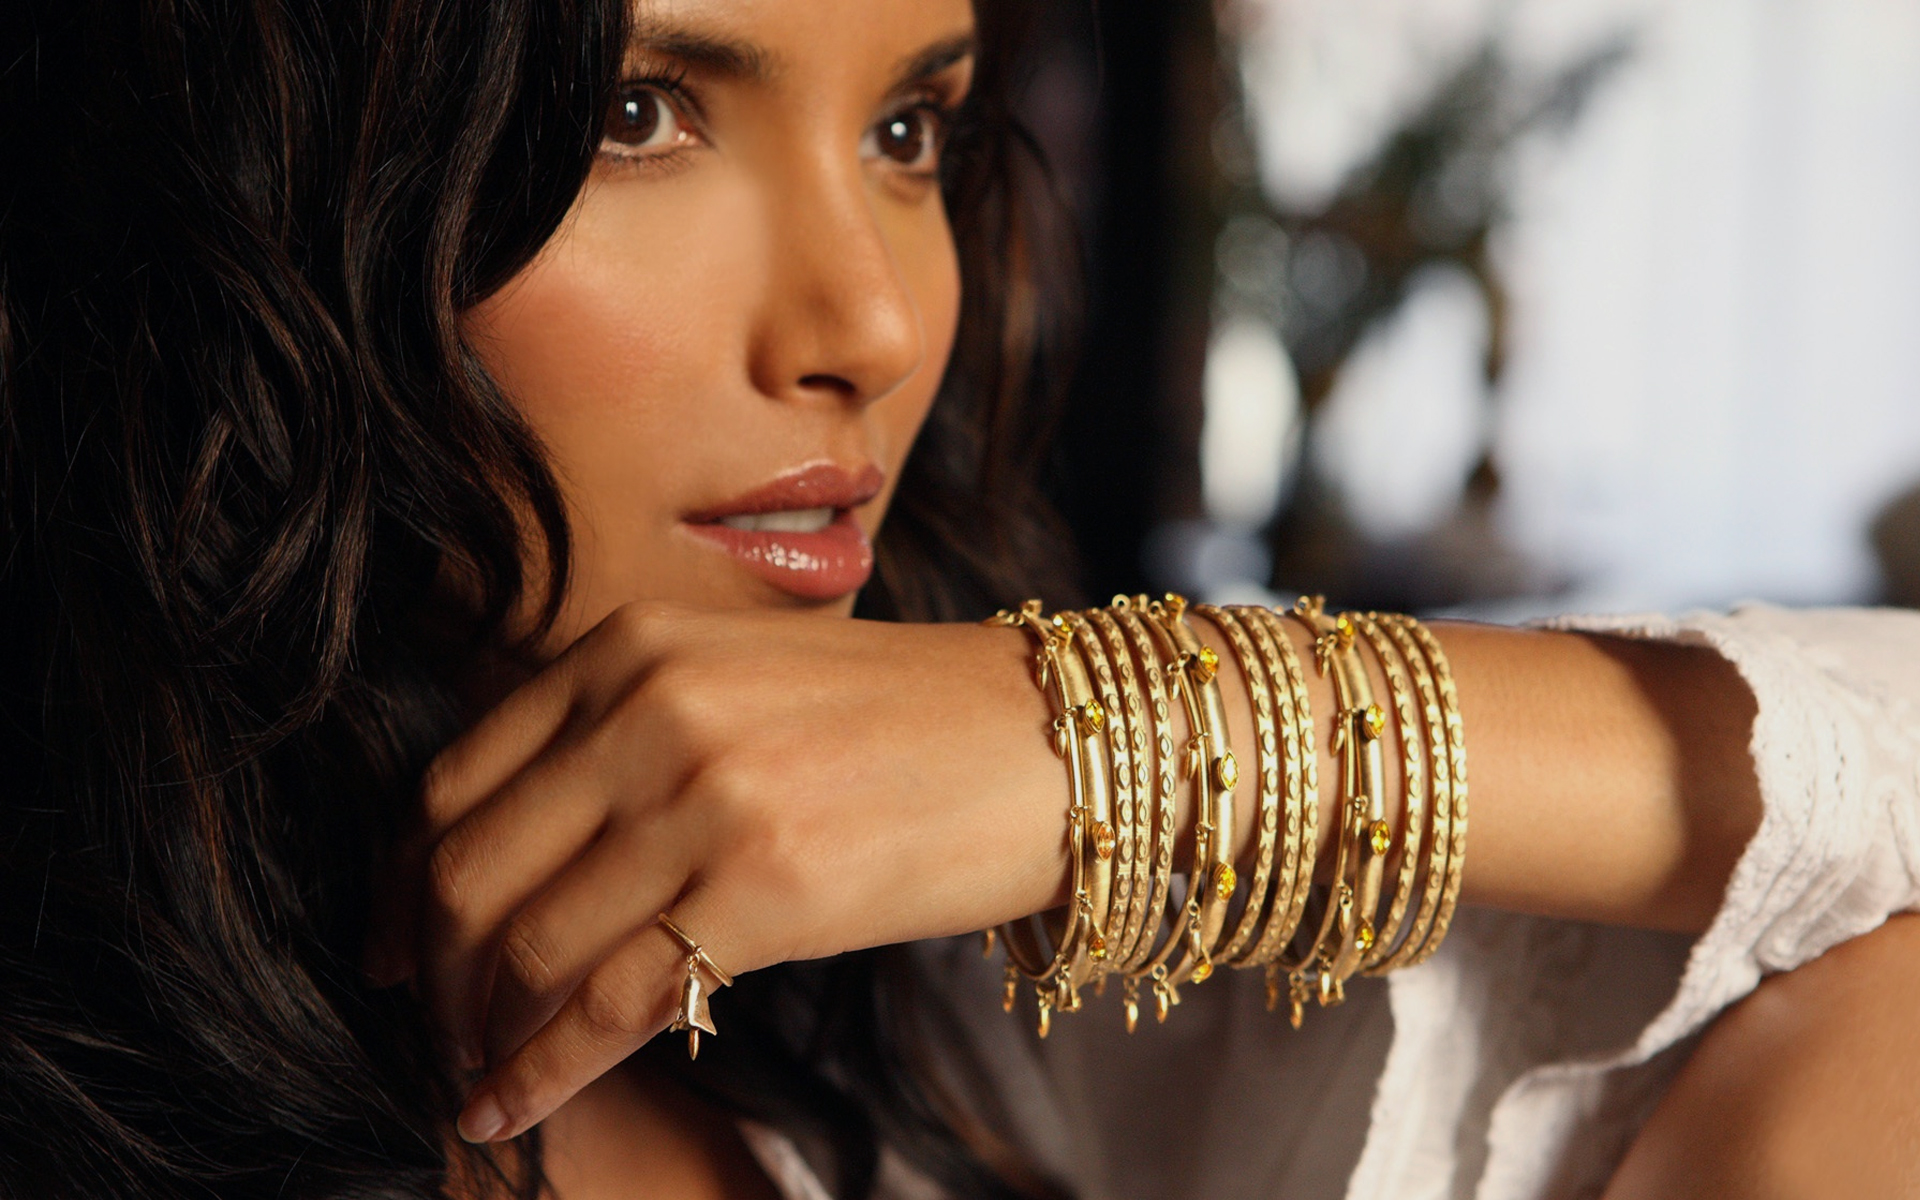 Padma Lakshmi's Jewelry line for HSN